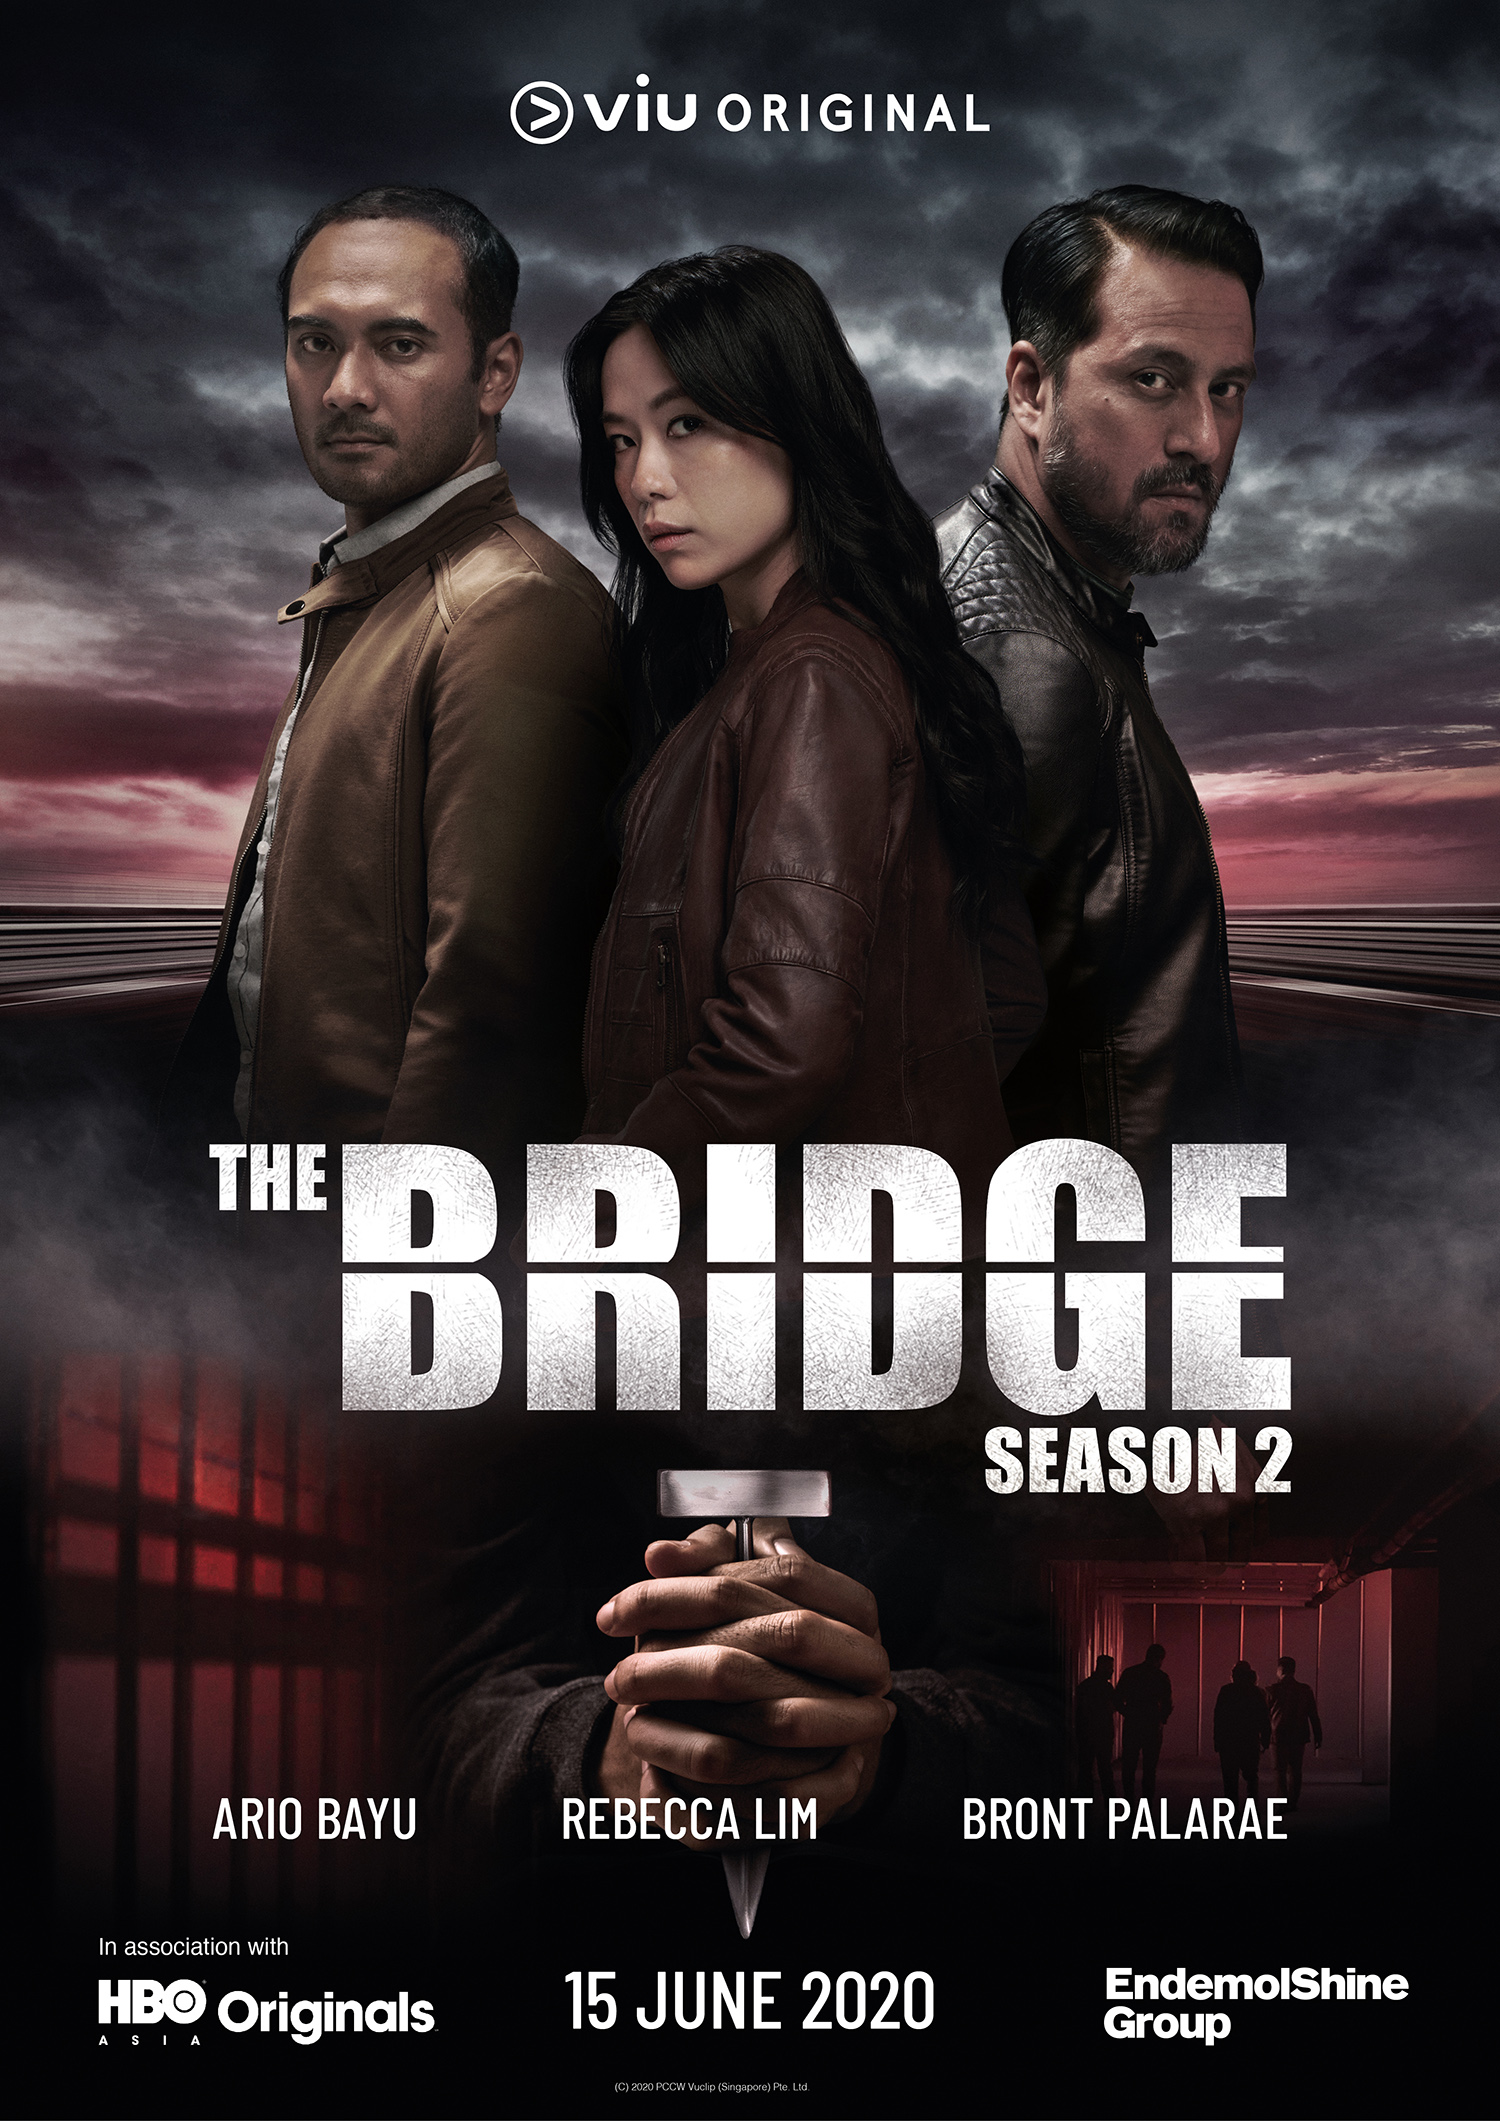 Viu and HBO Asia to air second season of 'The Bridge' starting 15 June